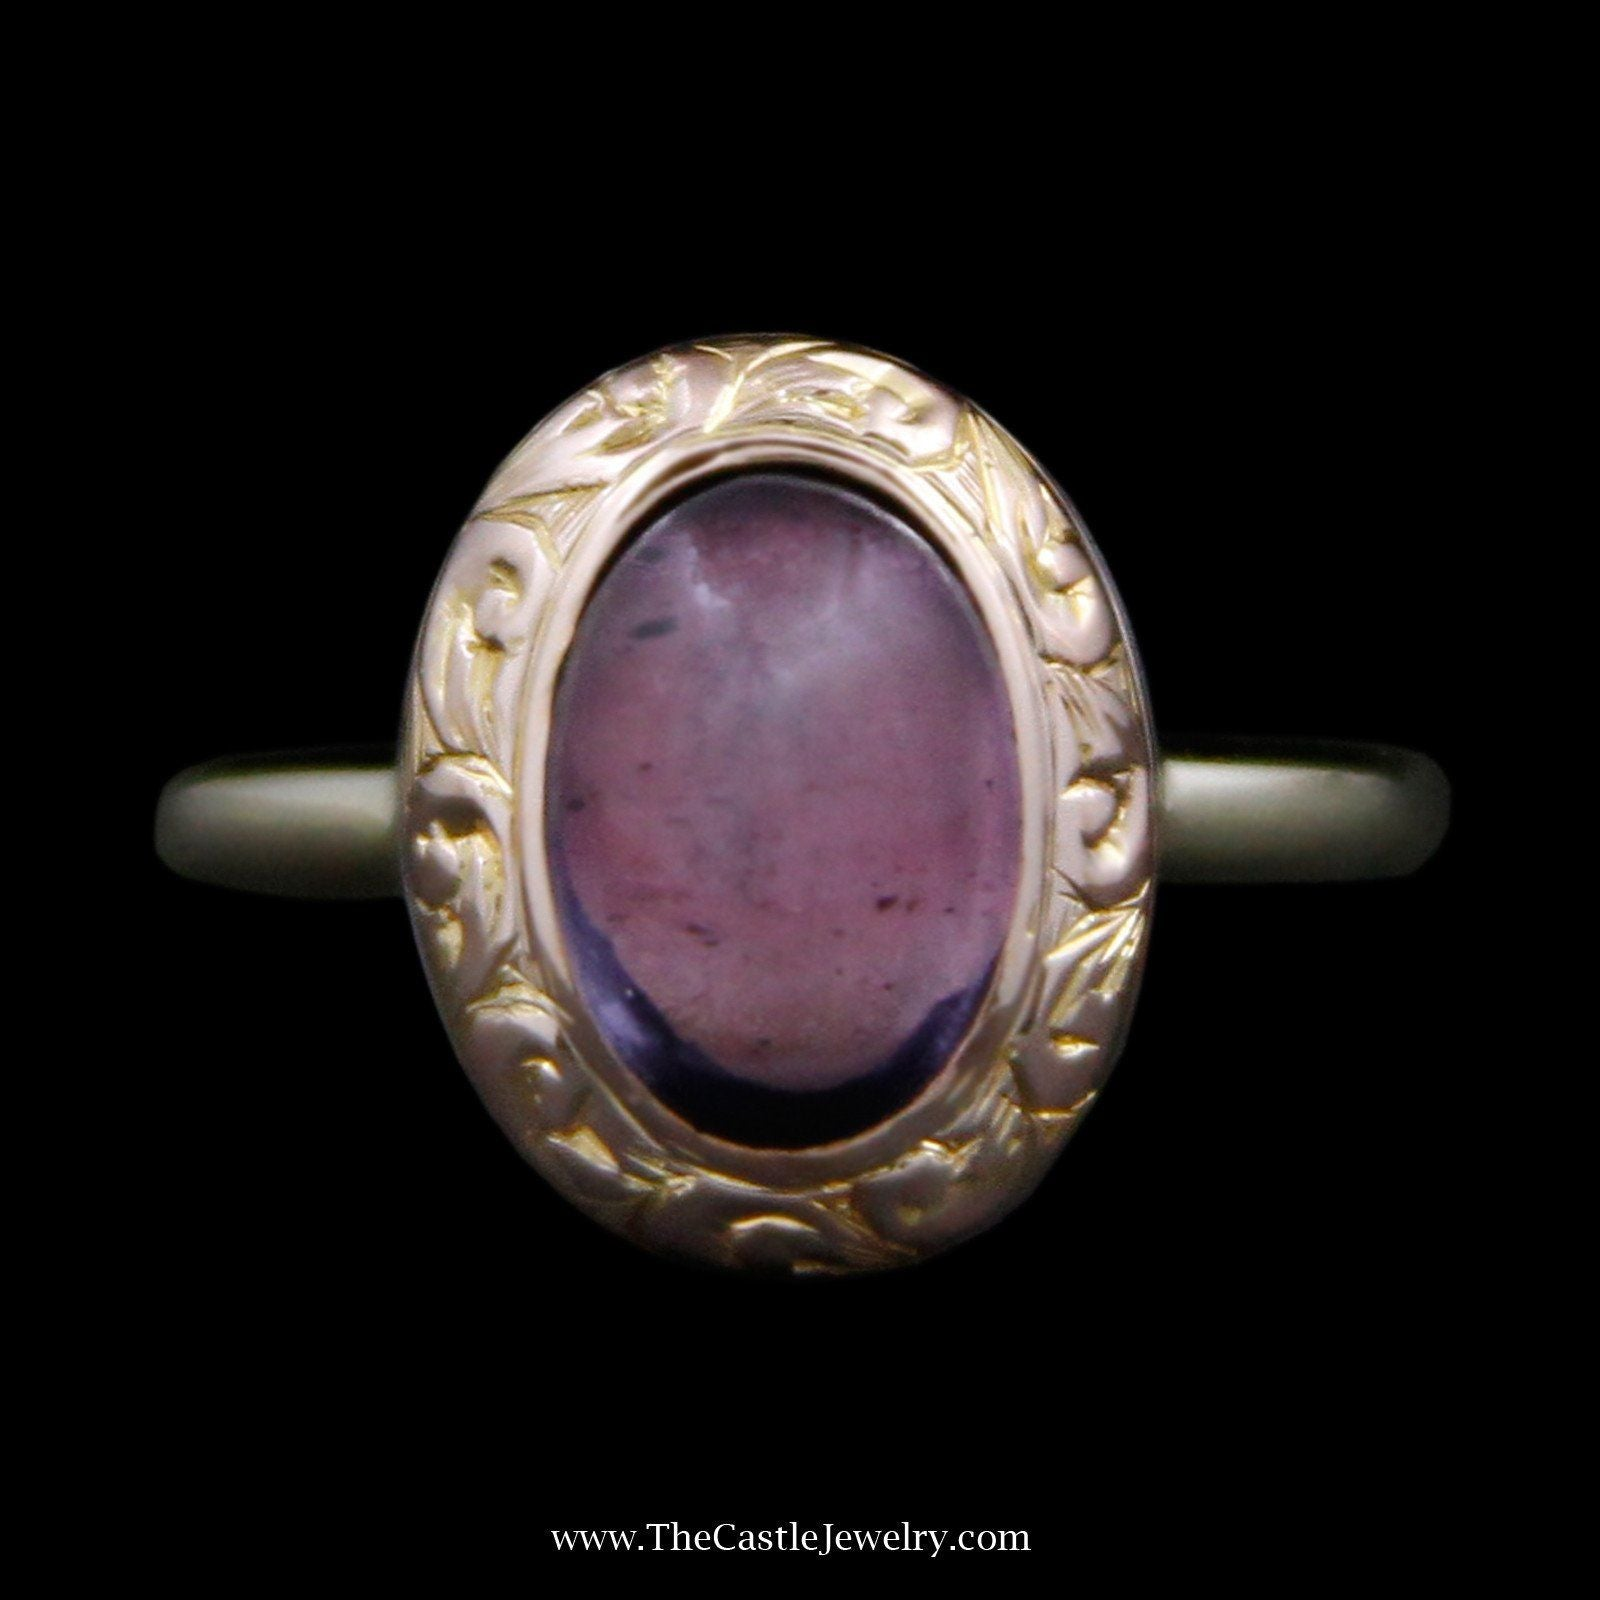 Charming Oval Cabochon Amethyst Ring with Swirl Design Bezel in 14k Yellow Gold